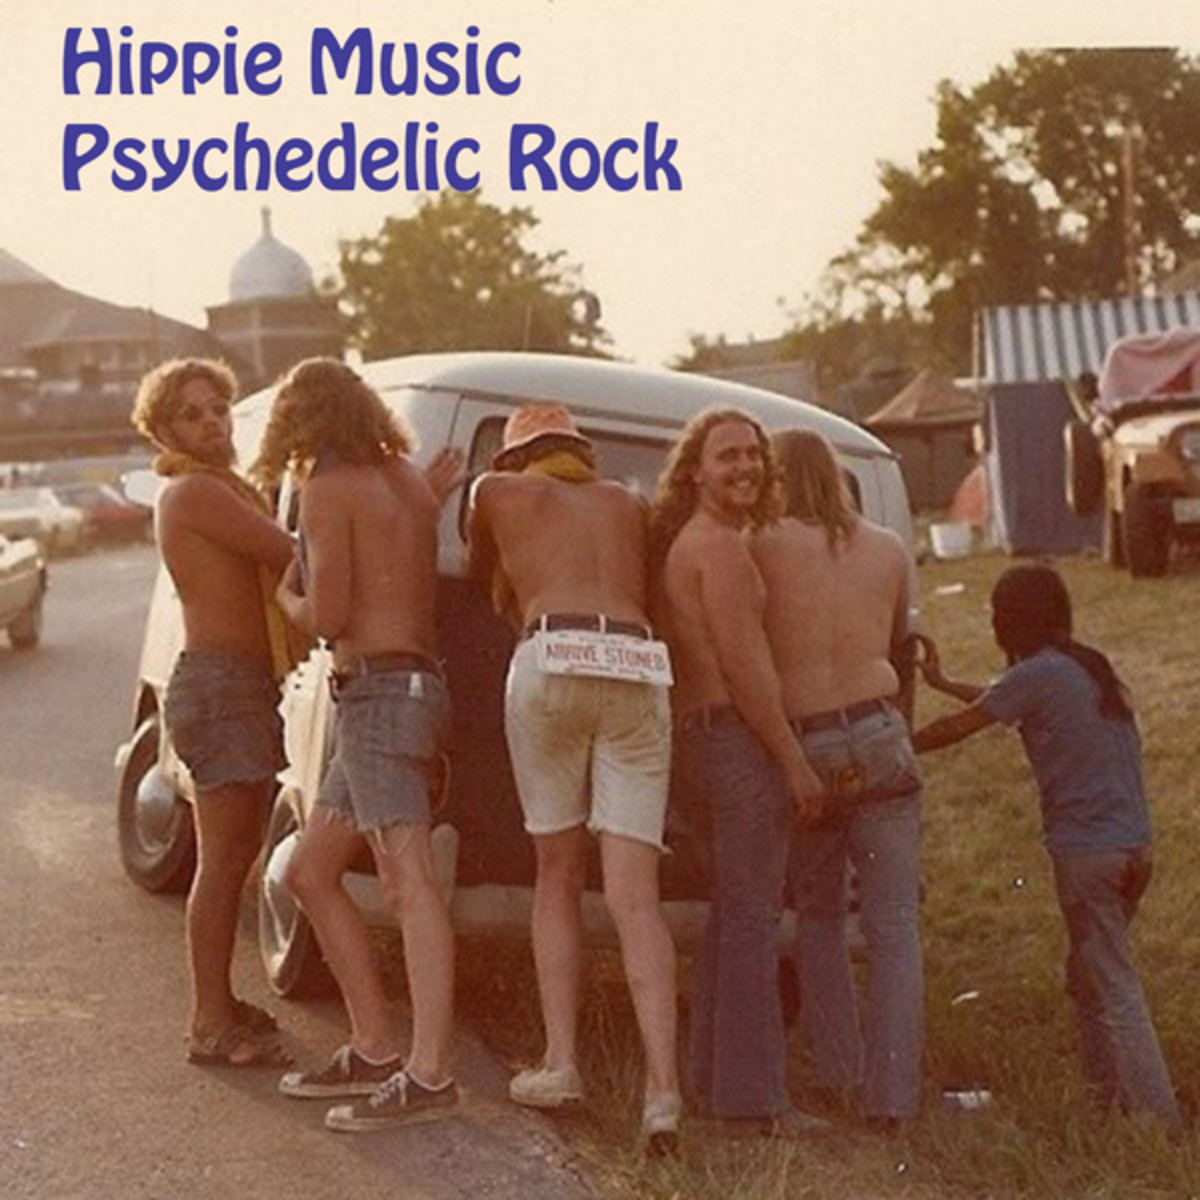 The Ten Best Psychedelic Rock Albums